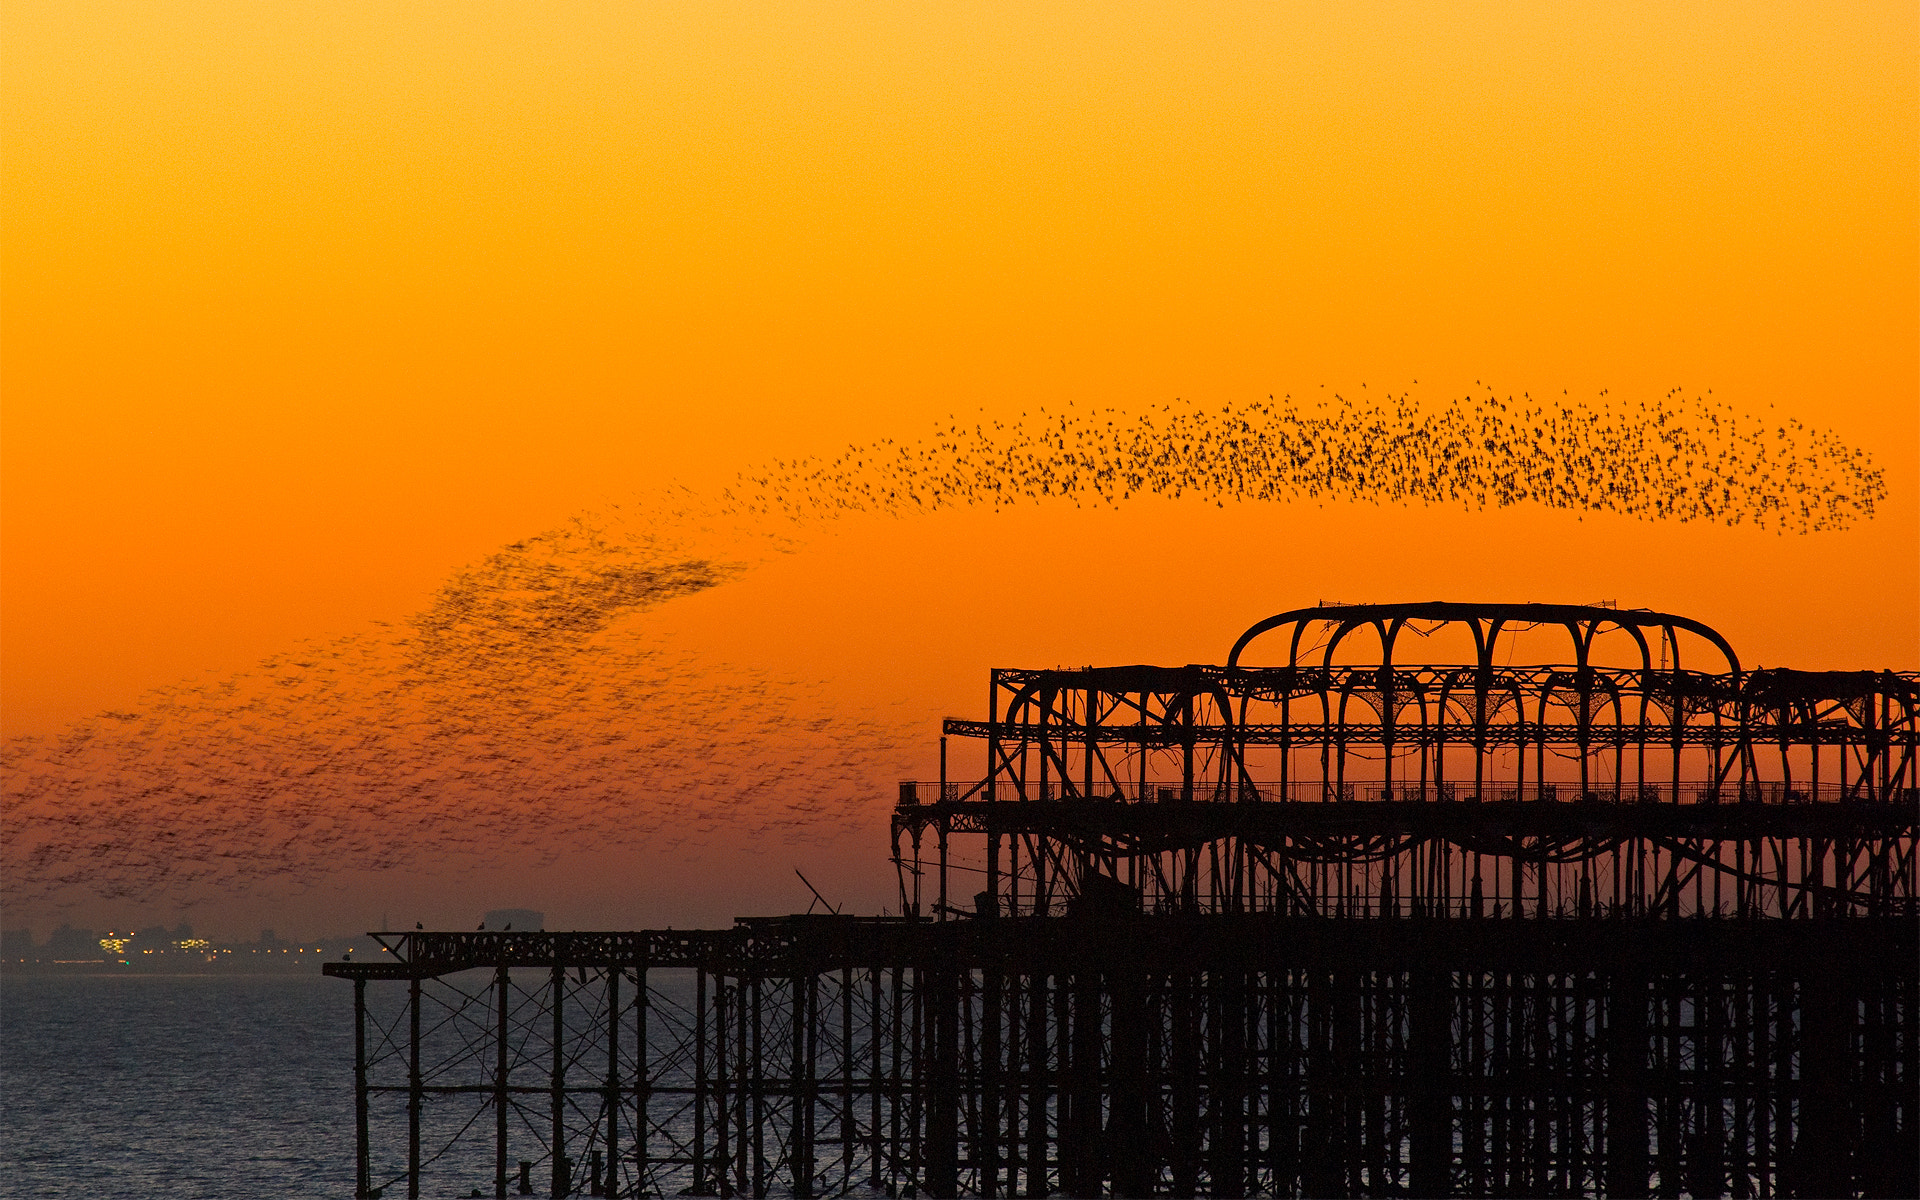 Photograph A murmuration of starlings by Neil O'Connell on 500px